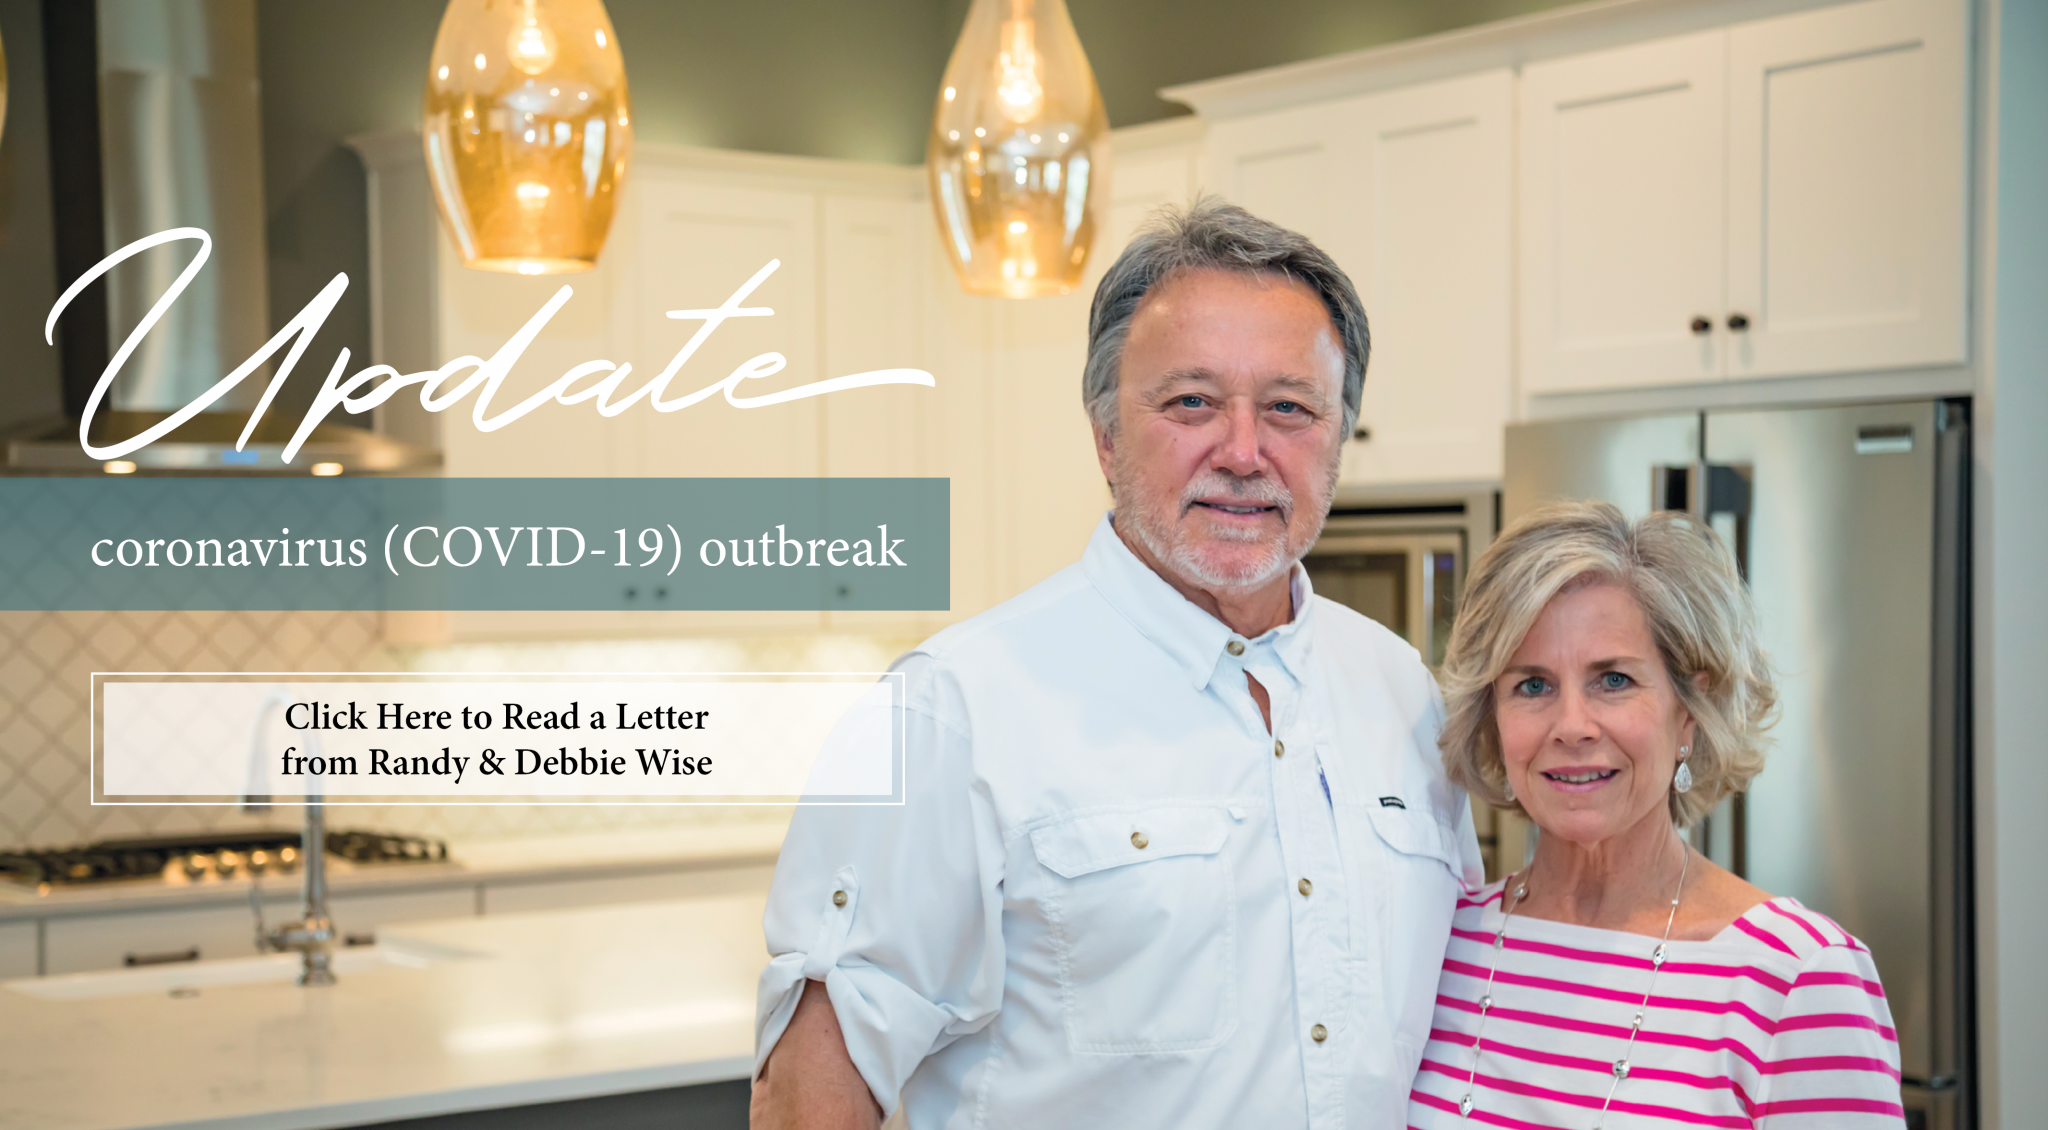 Randy and Debbie Wise standing in a kitchen providing an update about the COVID-19 outbreak